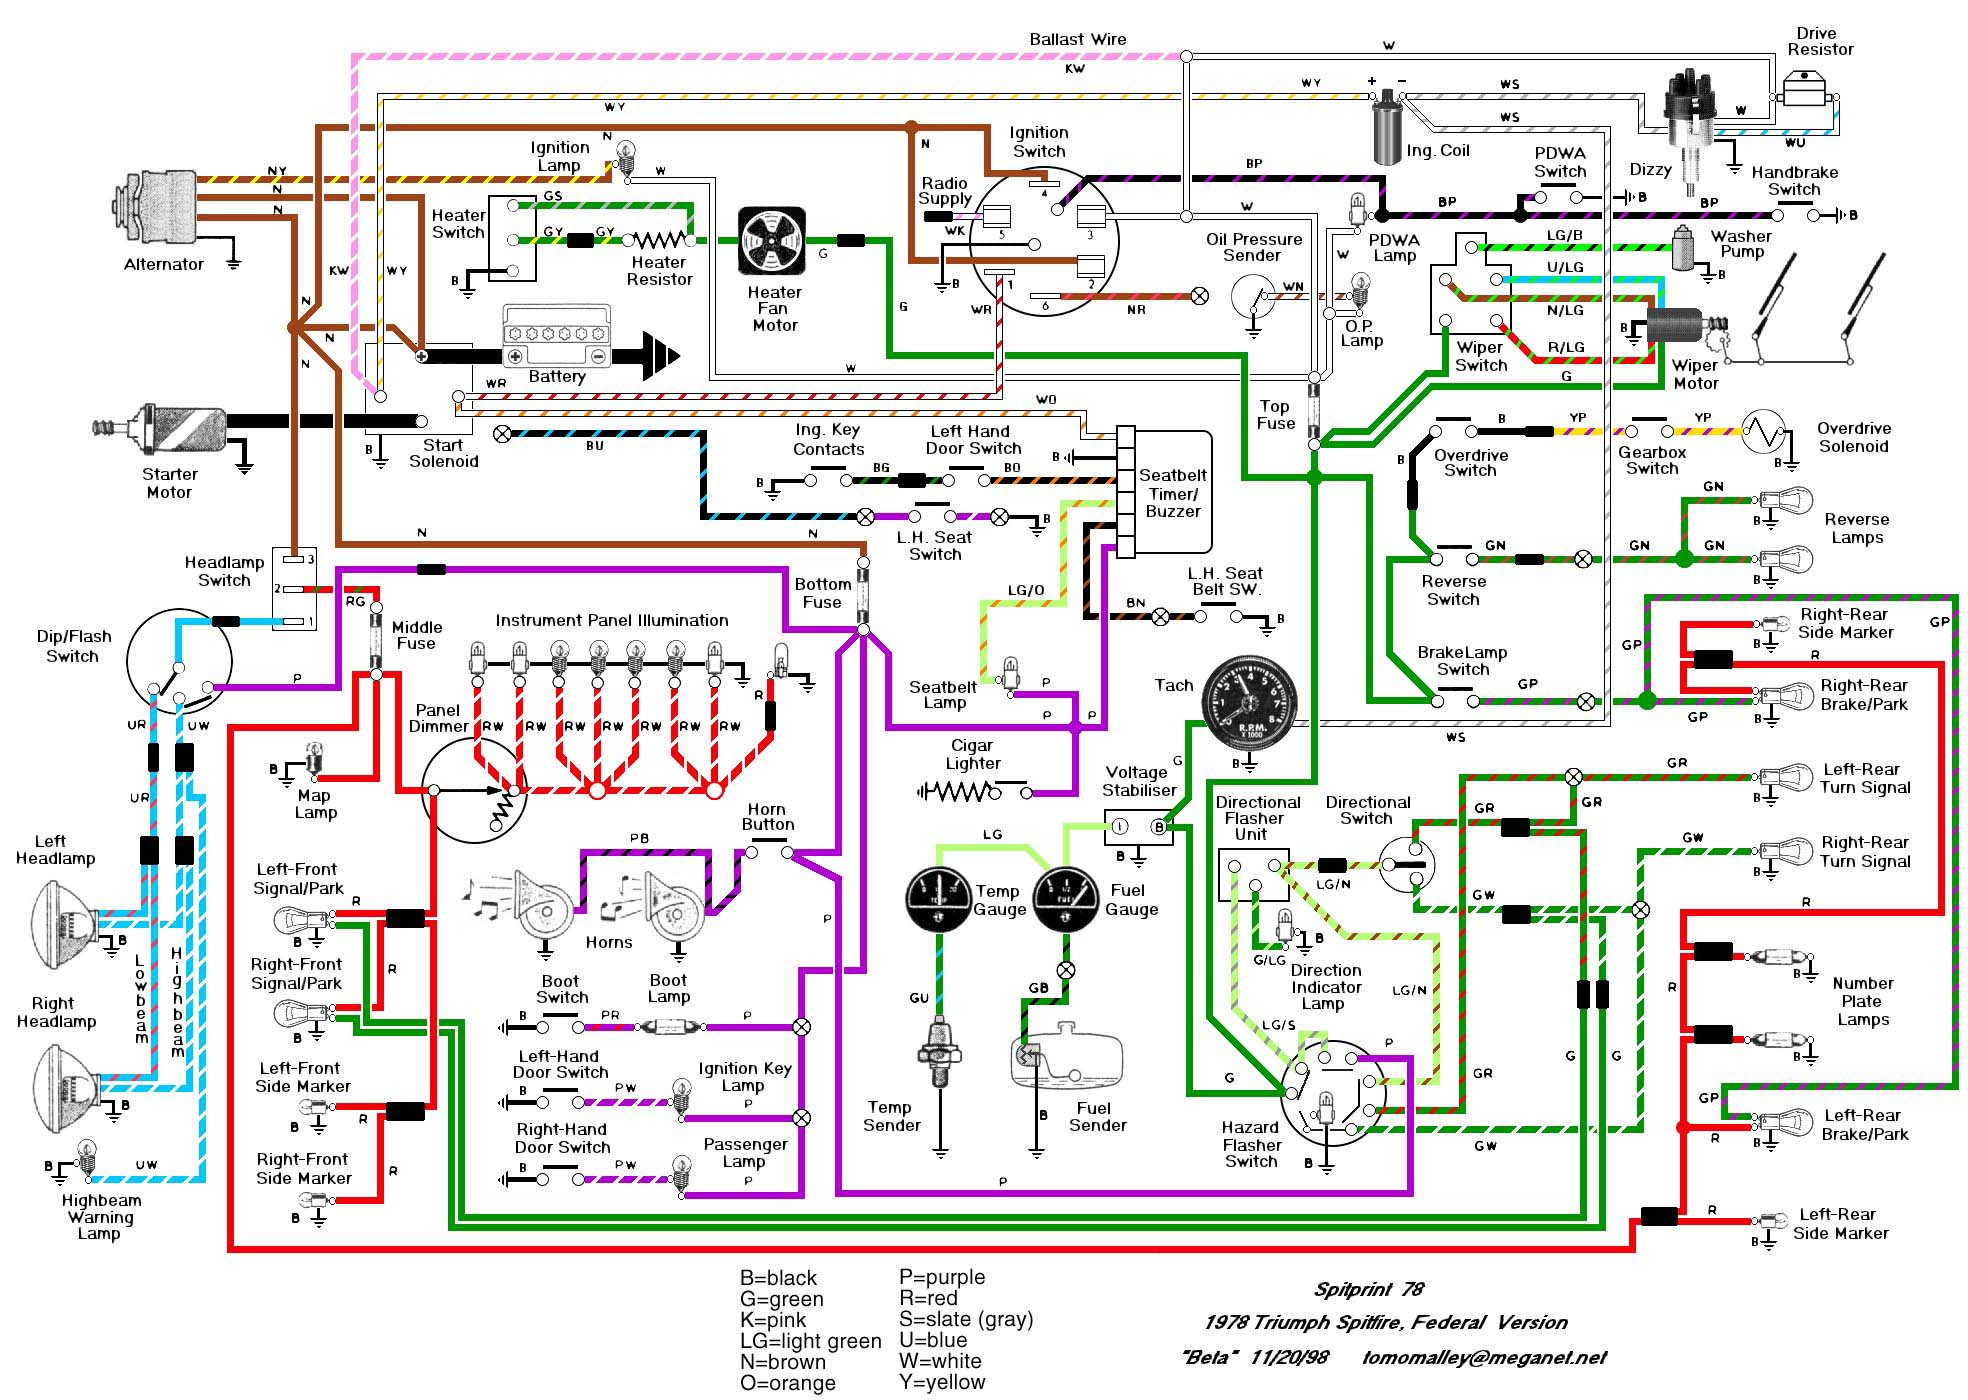 78diagram wiring schematics and diagrams triumph spitfire, gt6, herald 1980 triumph spitfire wiring diagram at virtualis.co